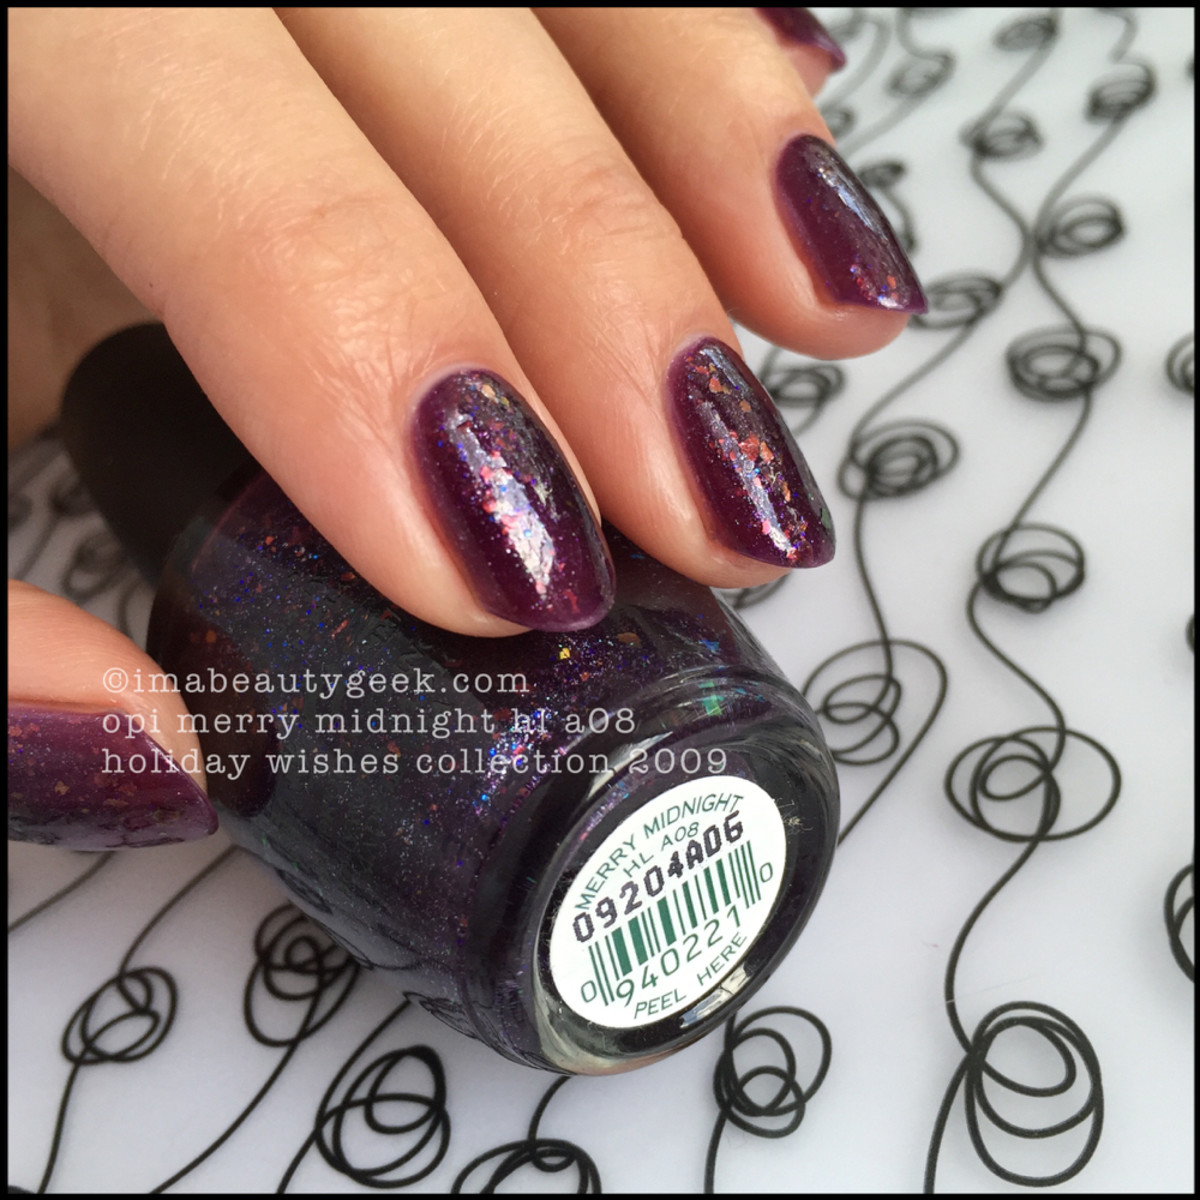 OPI Merry Midnight Holiday Wishes Collection 2009